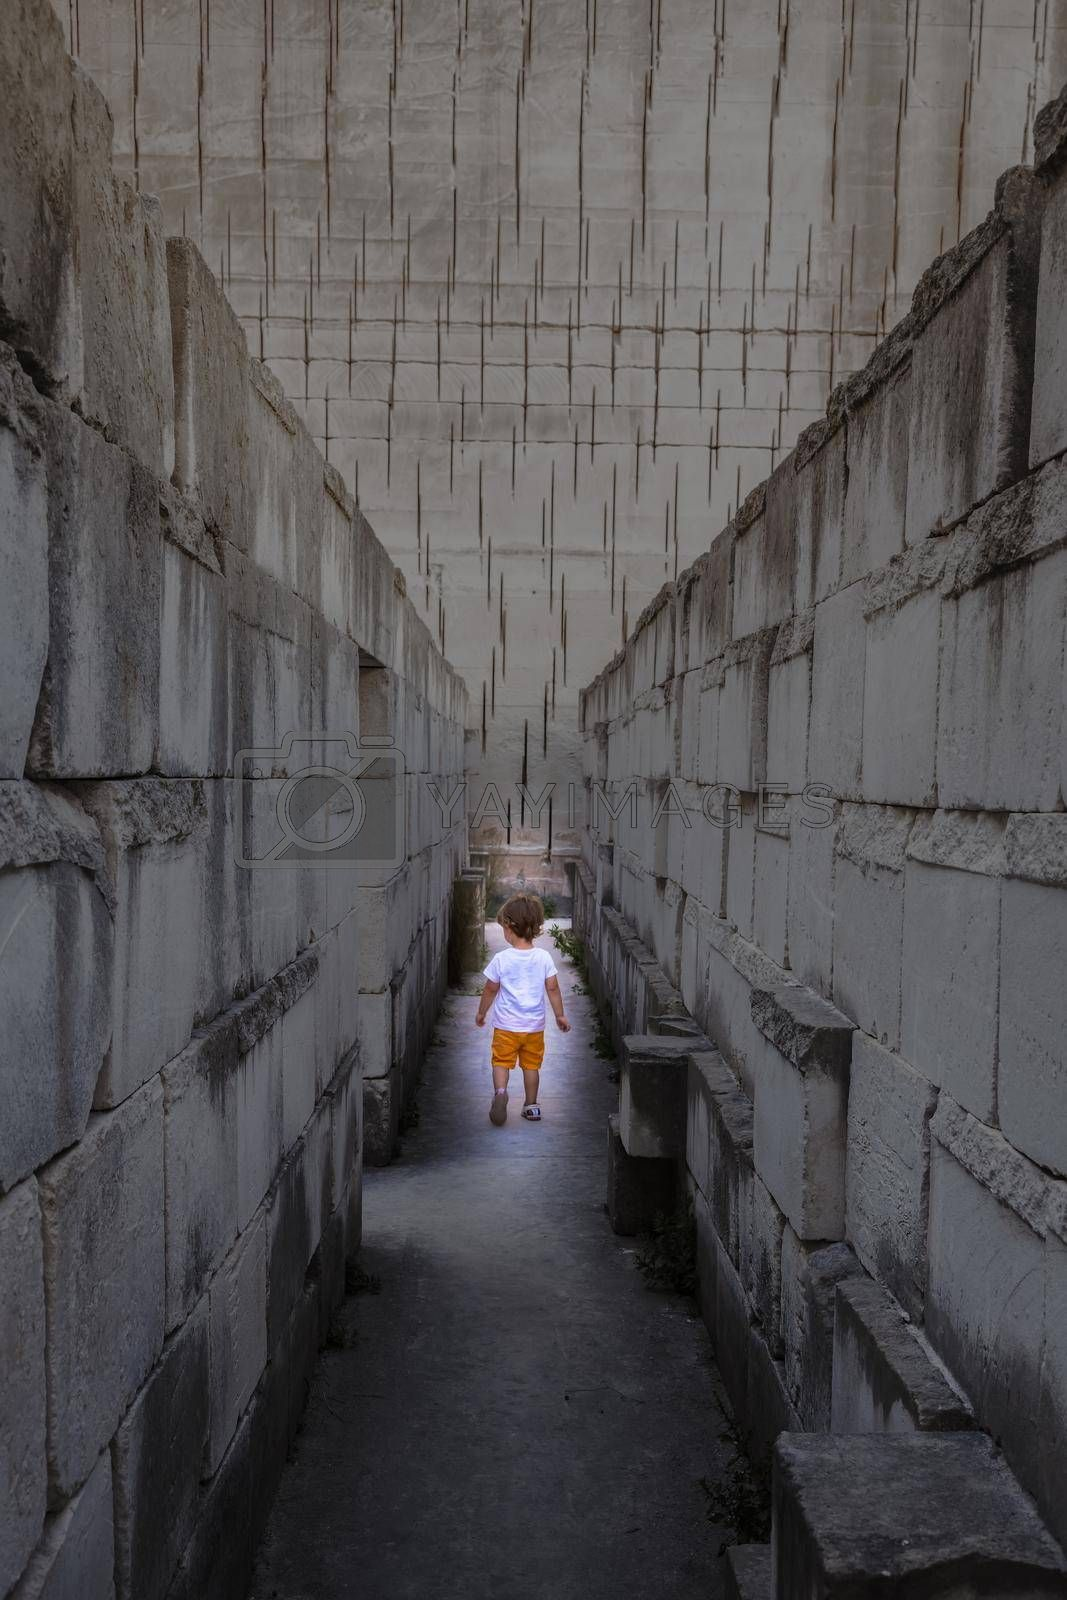 Royalty free image of Caucasian young kid walking in a labyrinth. Conceptual image for dangerous situation during childhood. by Perseomedusa